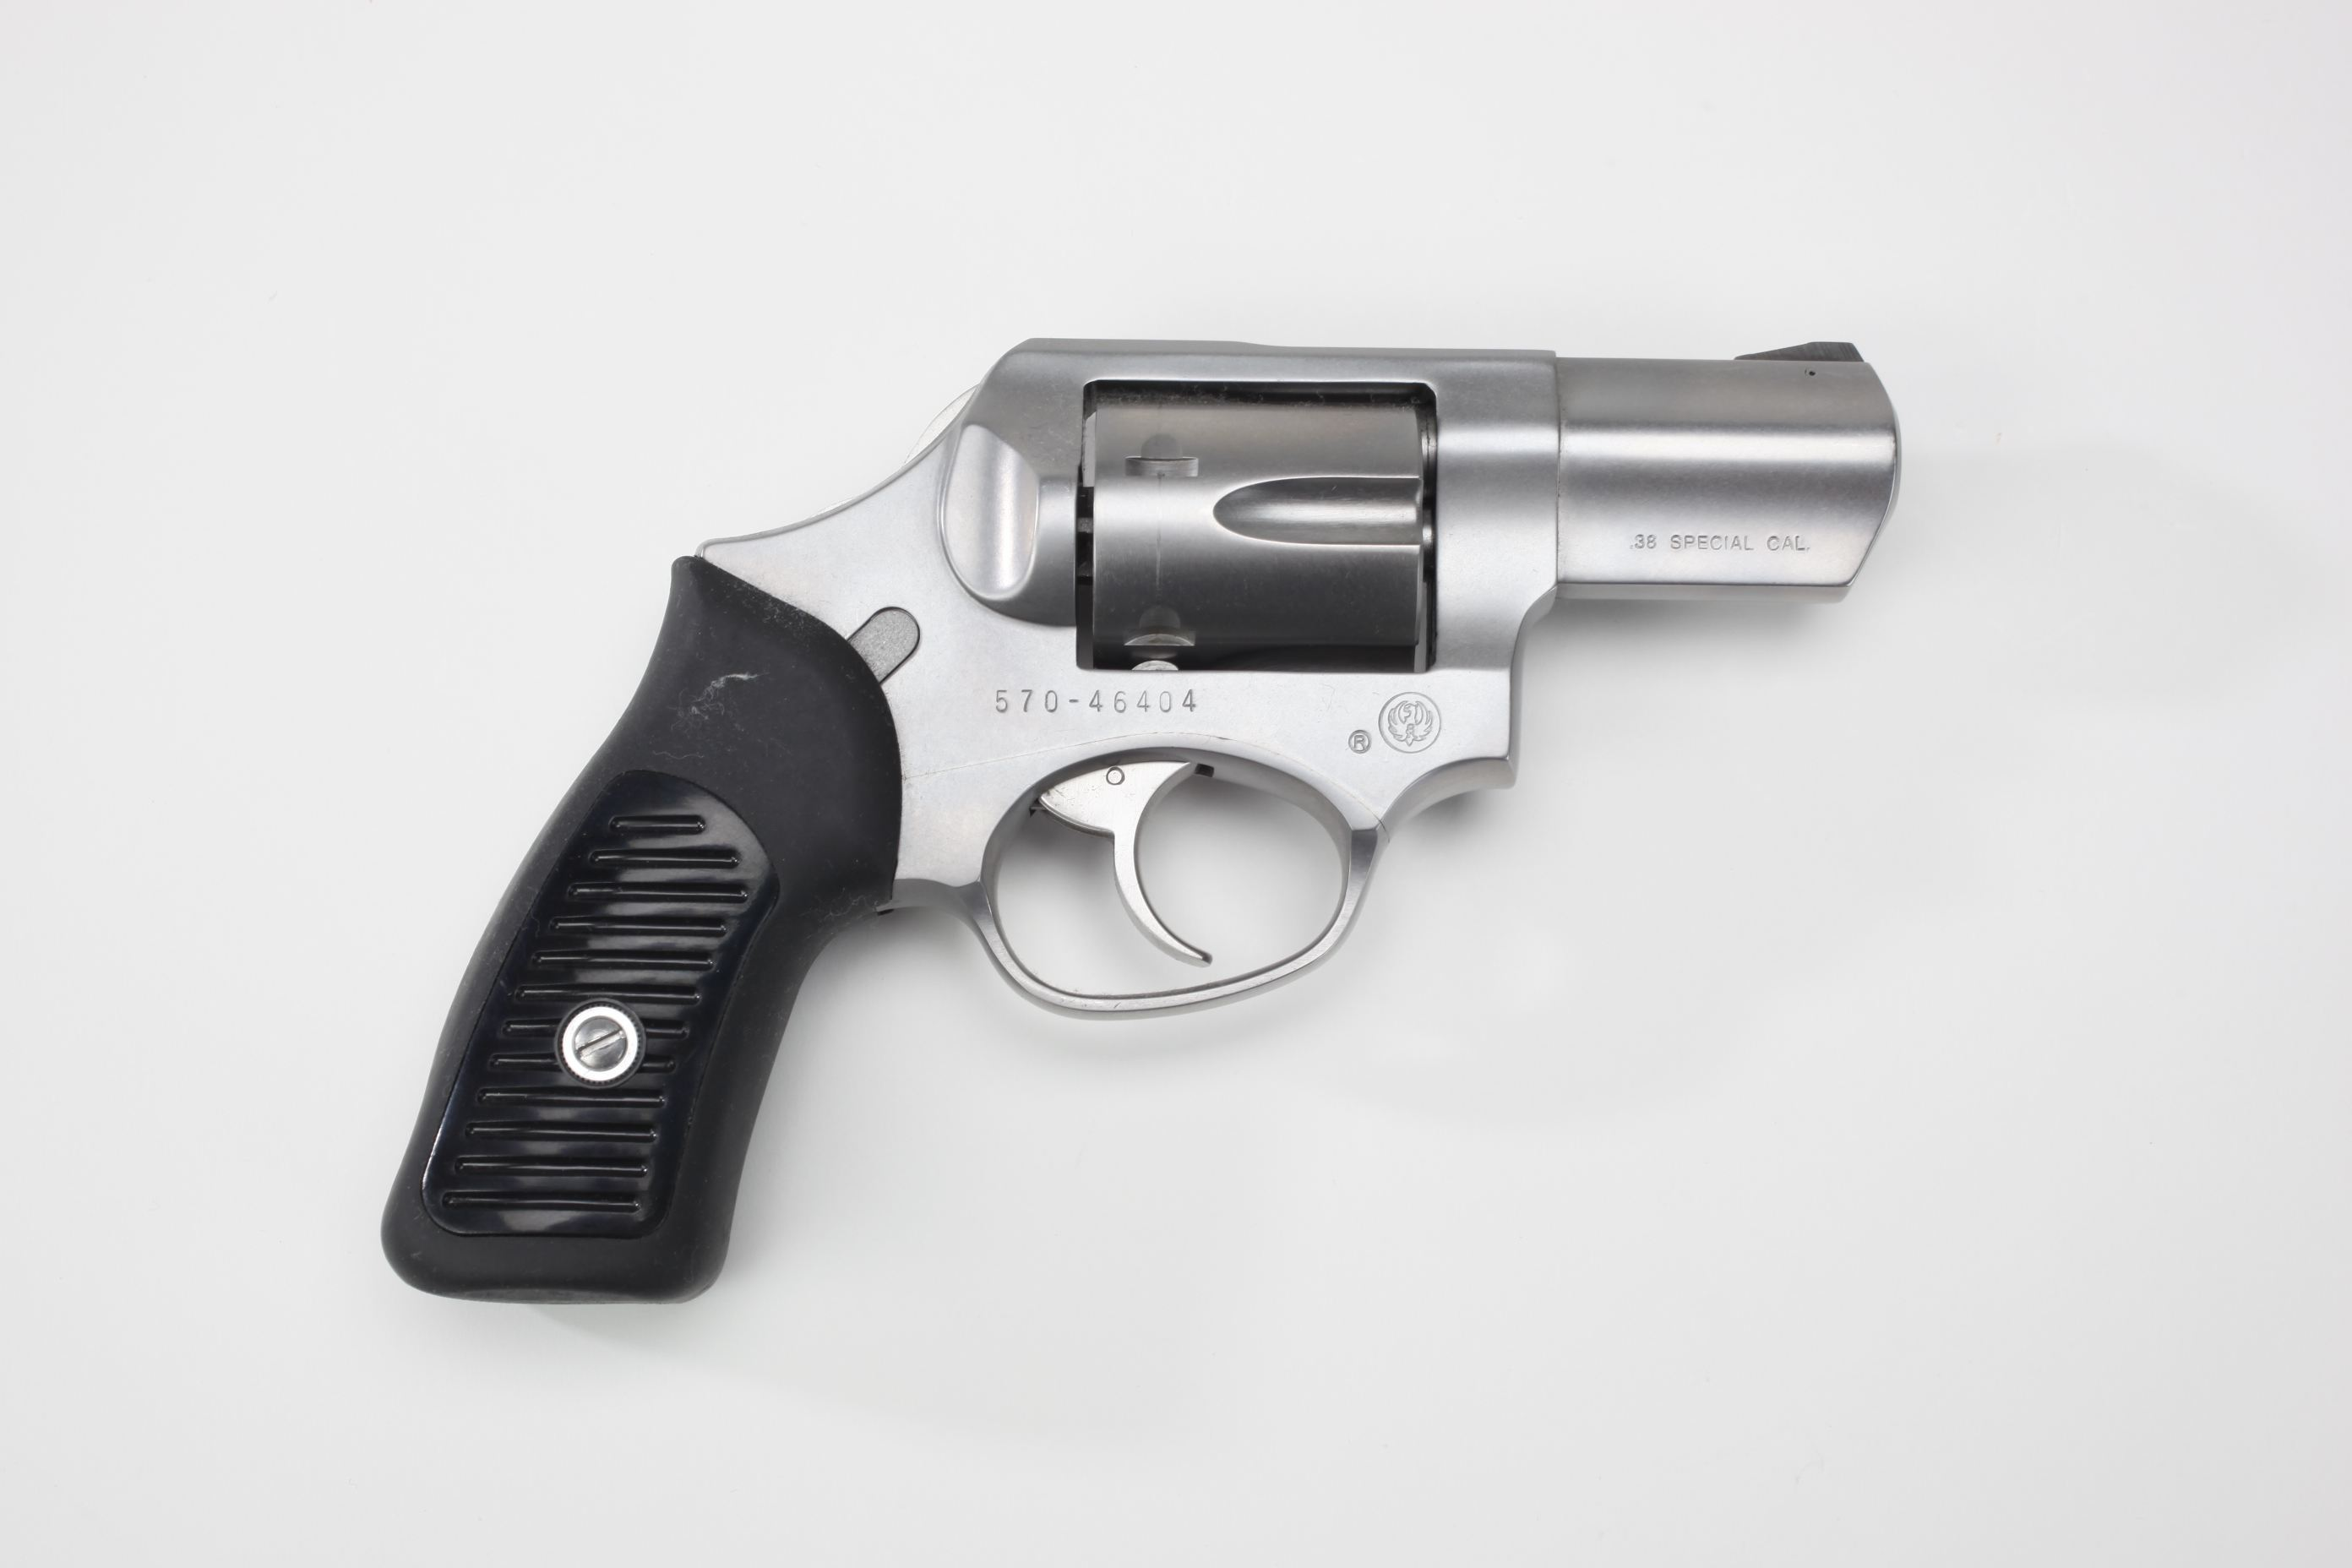 Sturm, Ruger & Co. KSPNY-182 Double-Action-Only Revolver